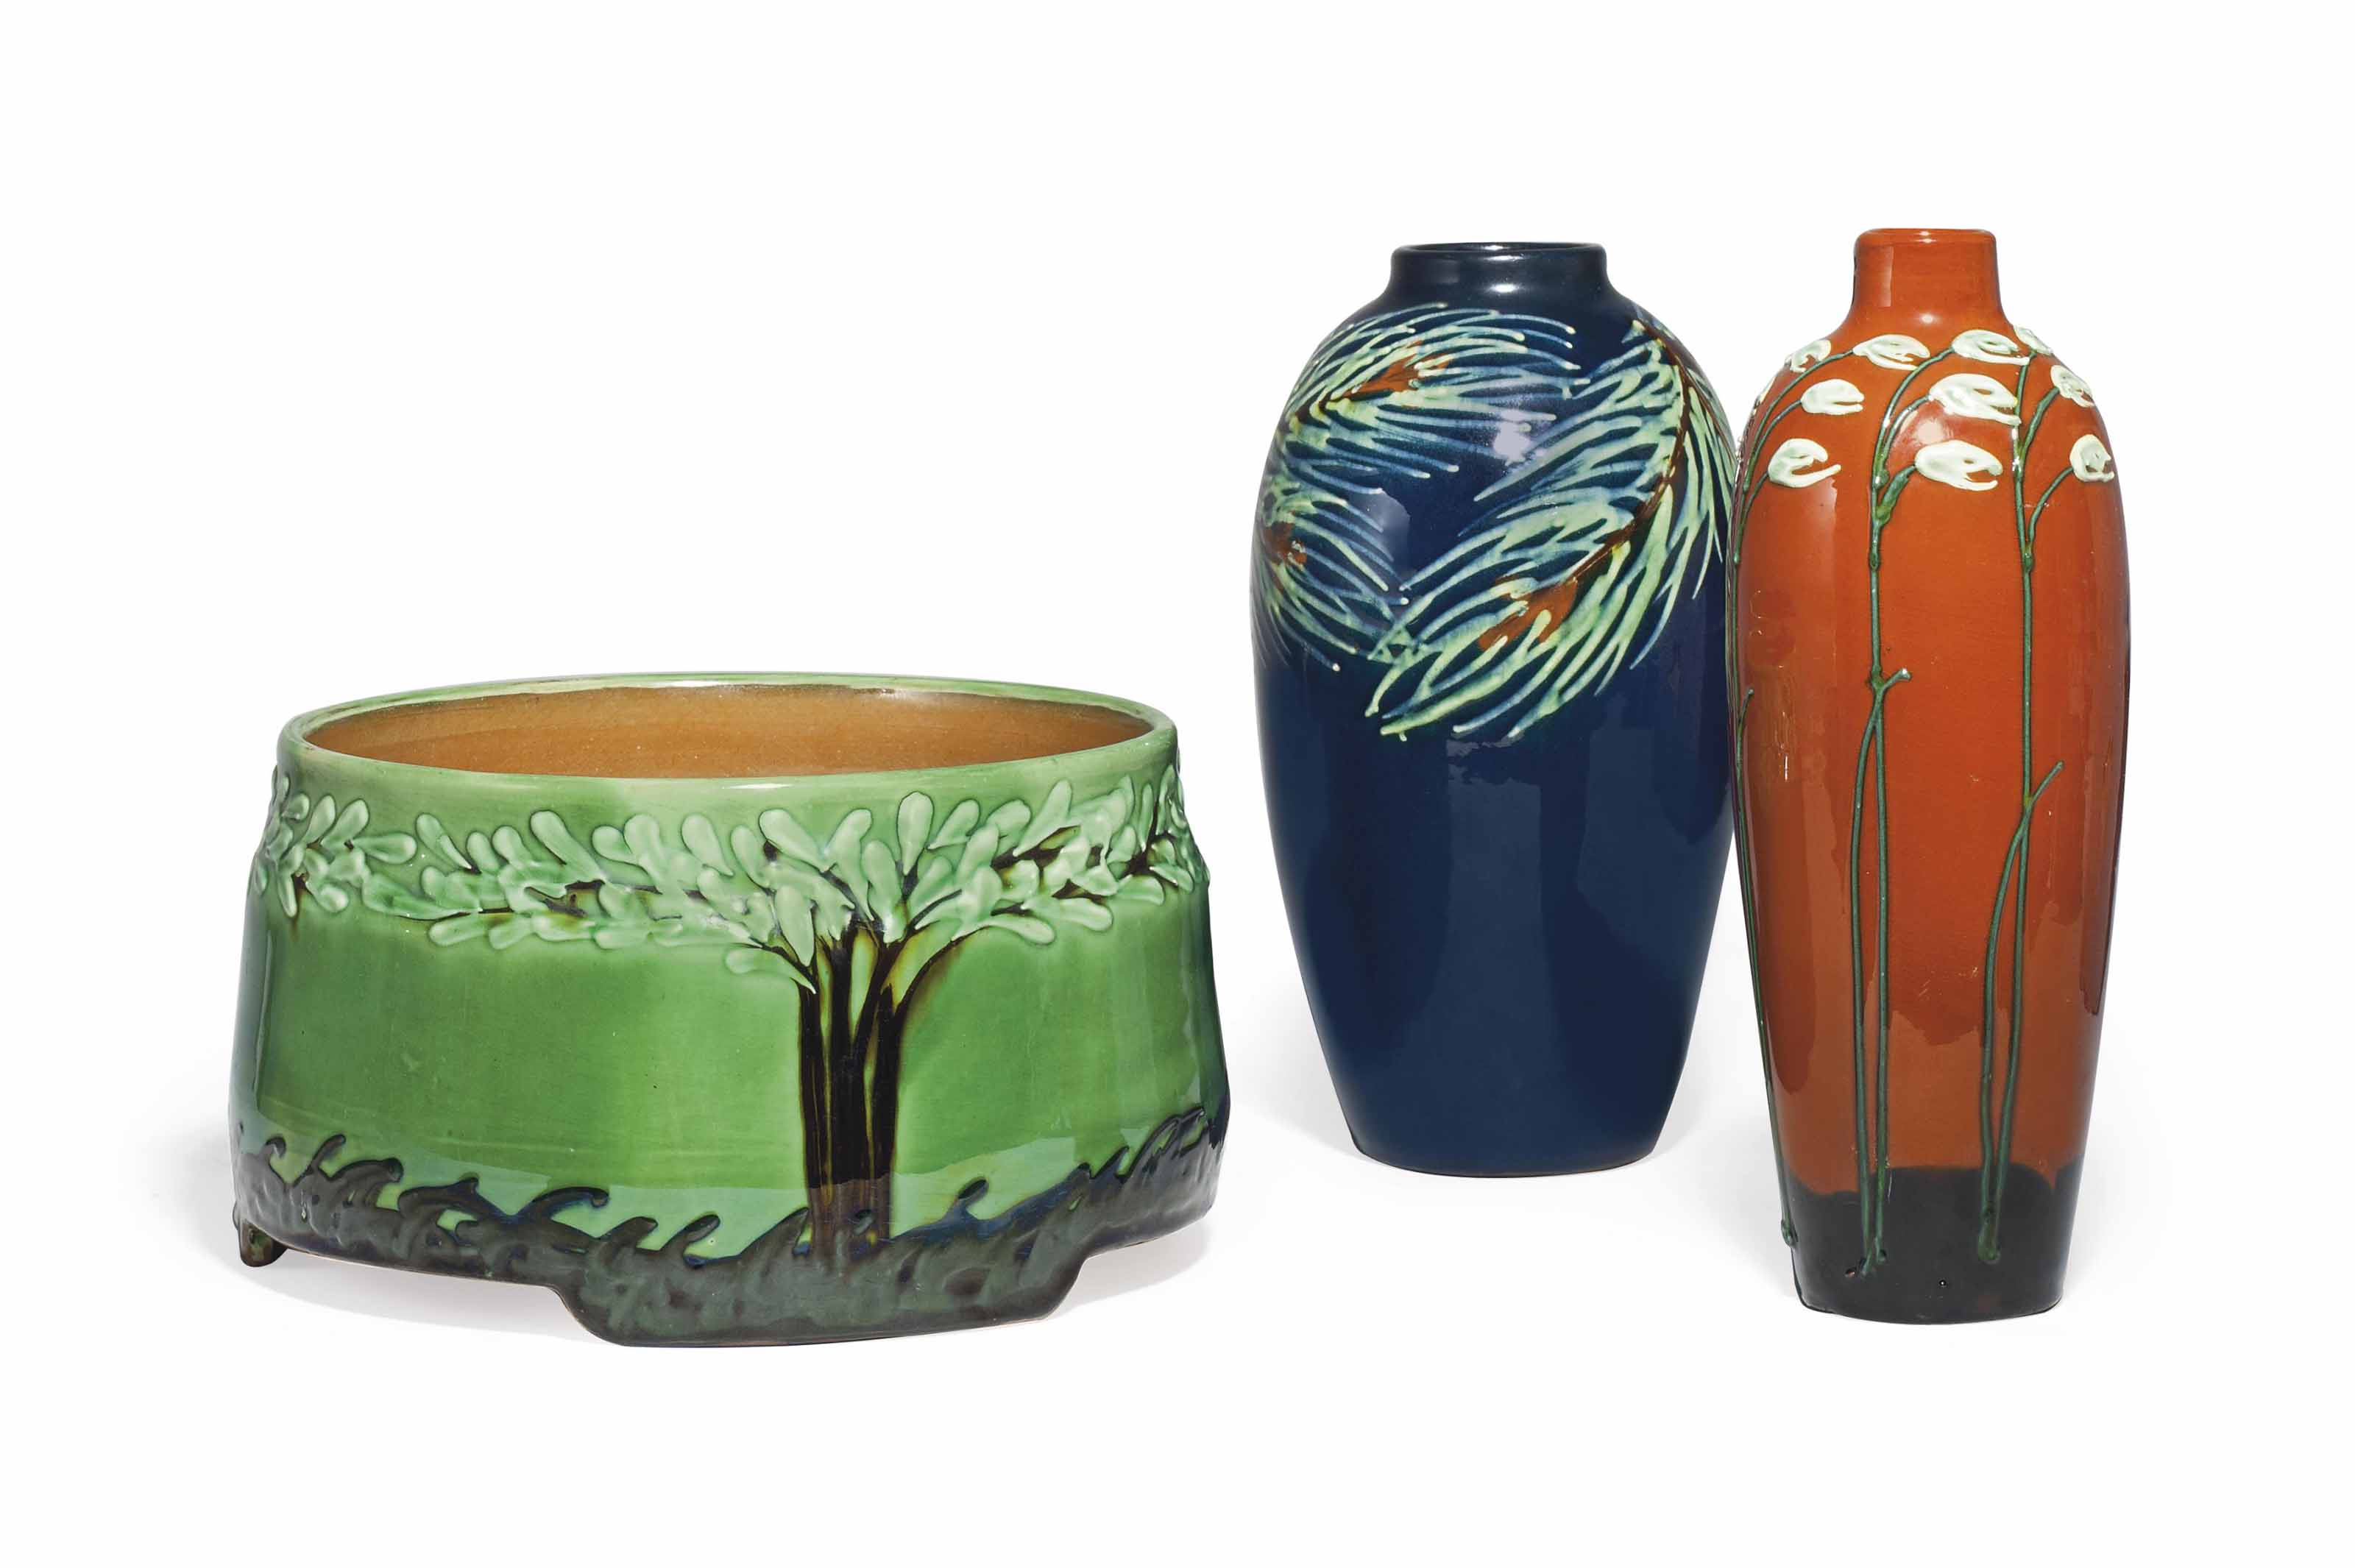 TWO GLAZED EARTHENWARE VASES A